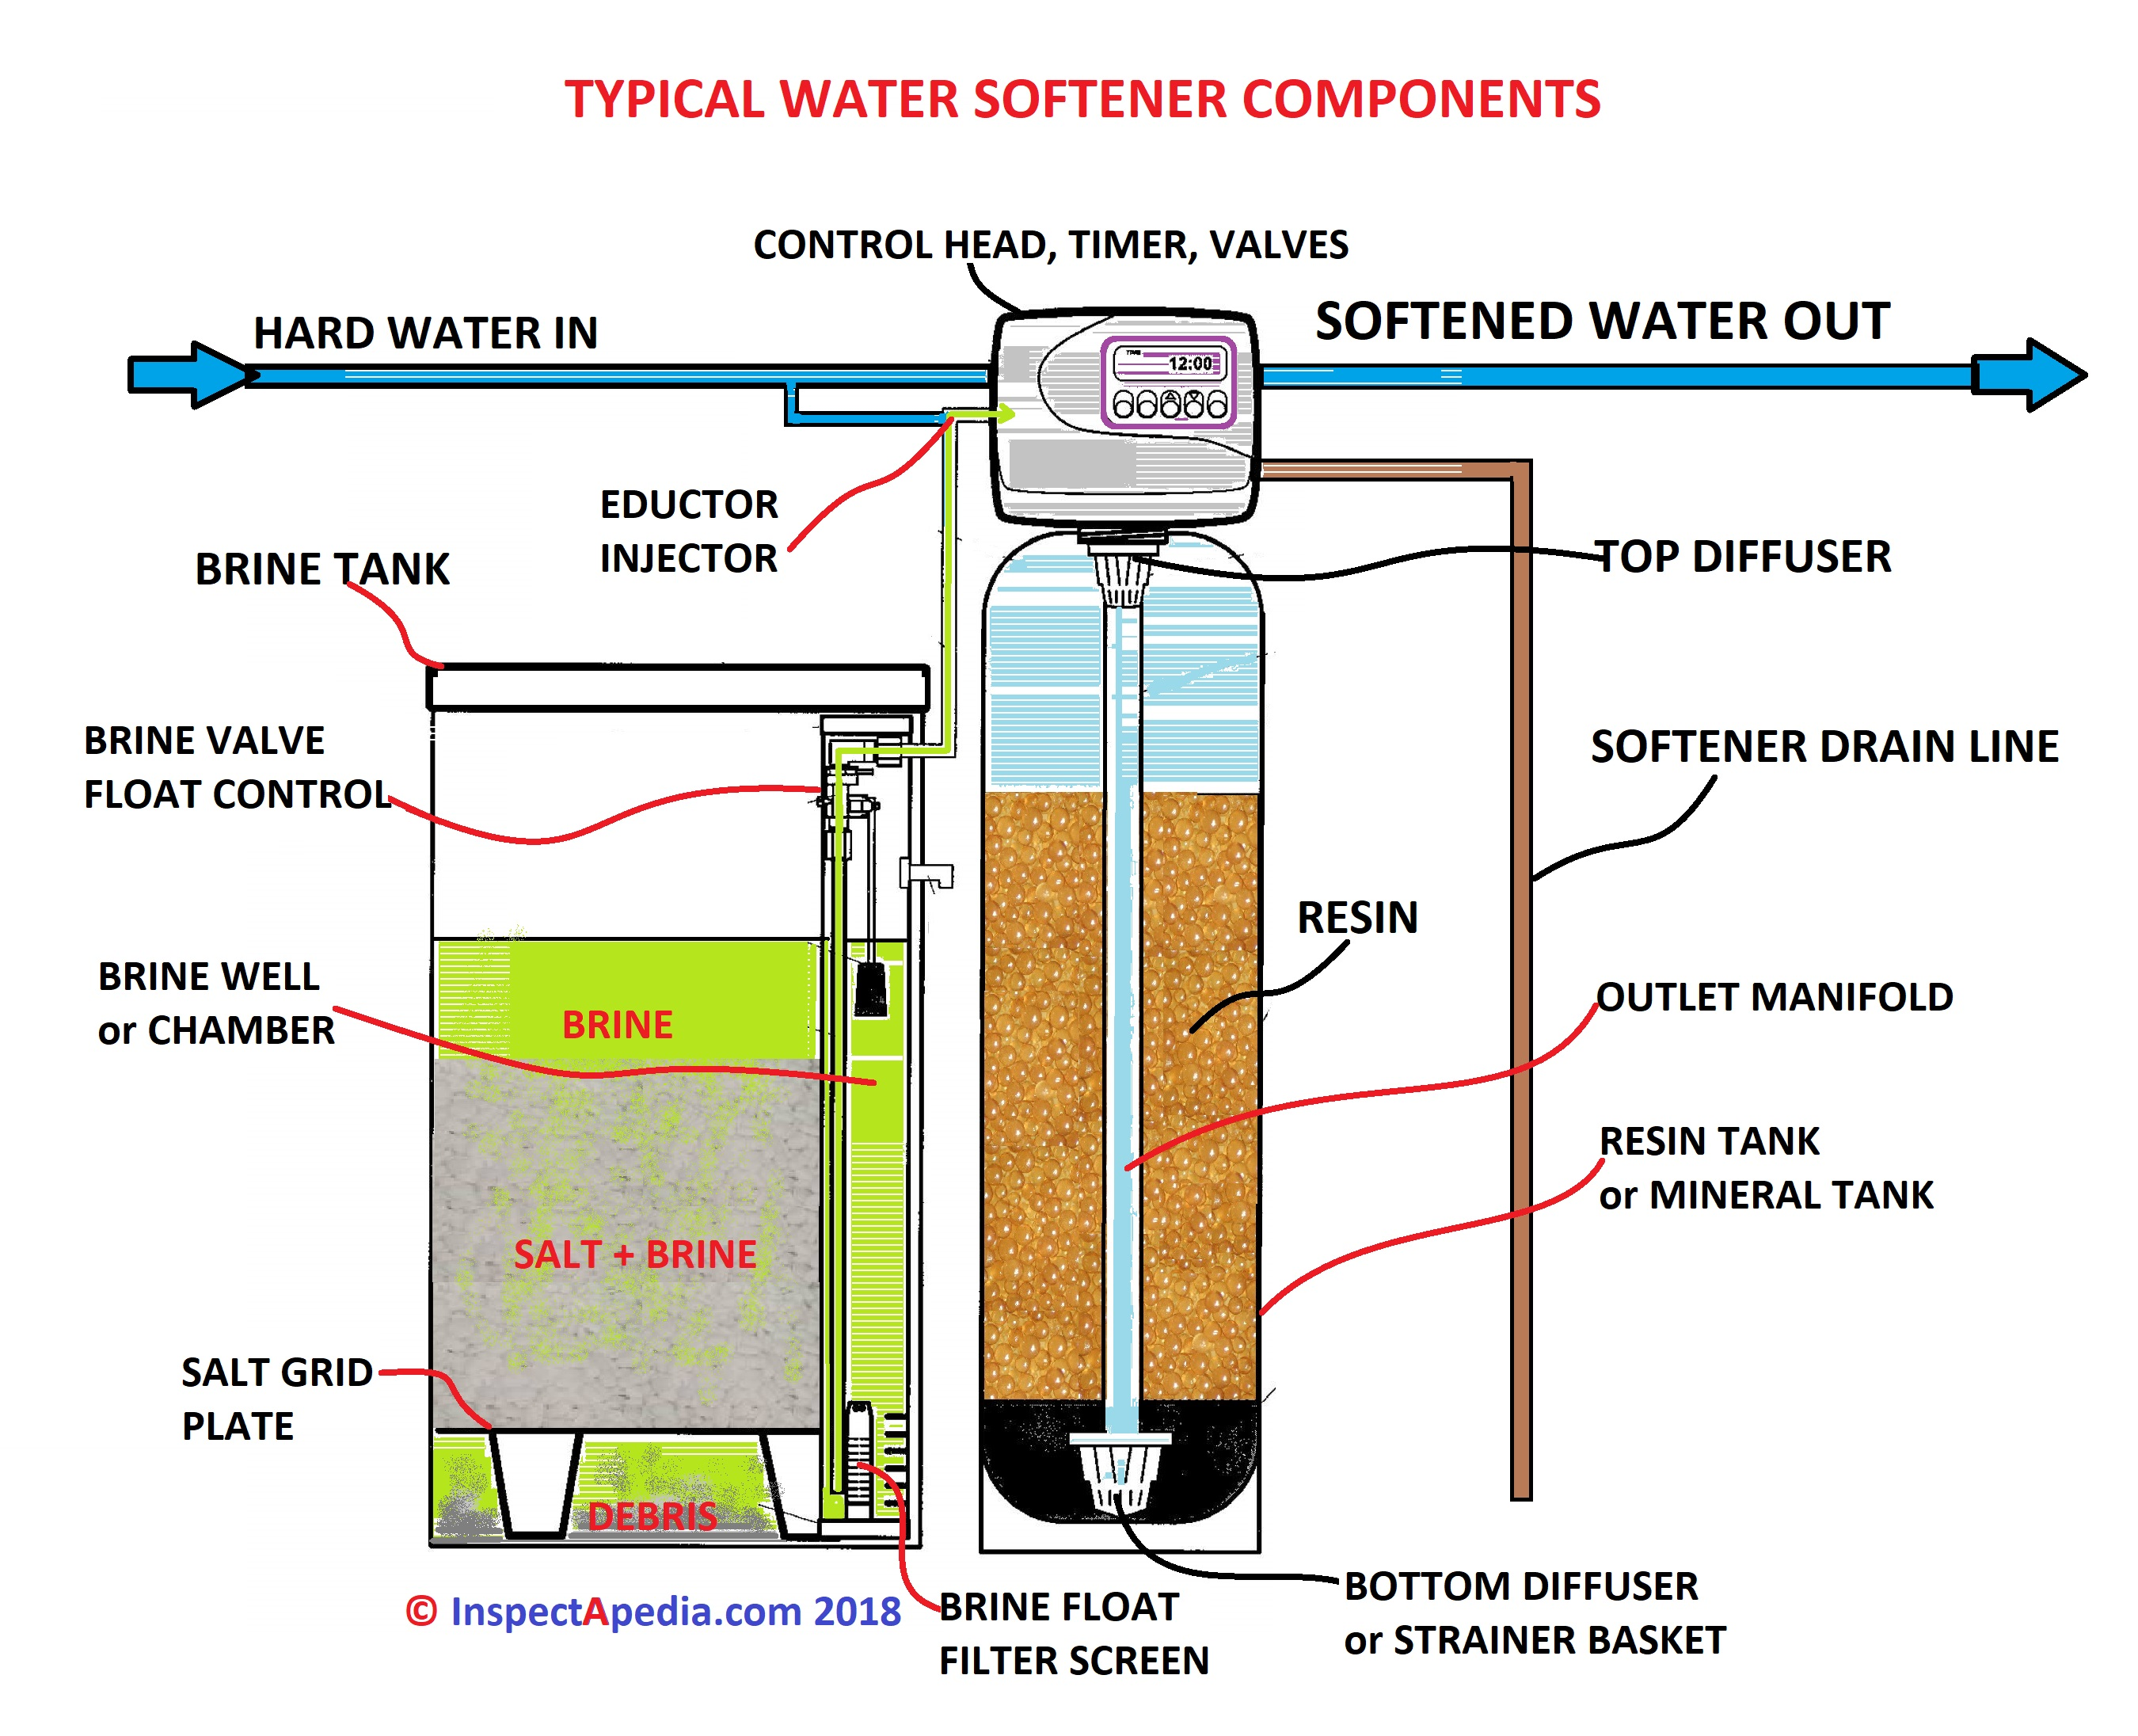 Water softener regeneration cycle duration fix a long water softener identify the basic parts of a water softener c daniel friedman at inspectapedia fandeluxe Images